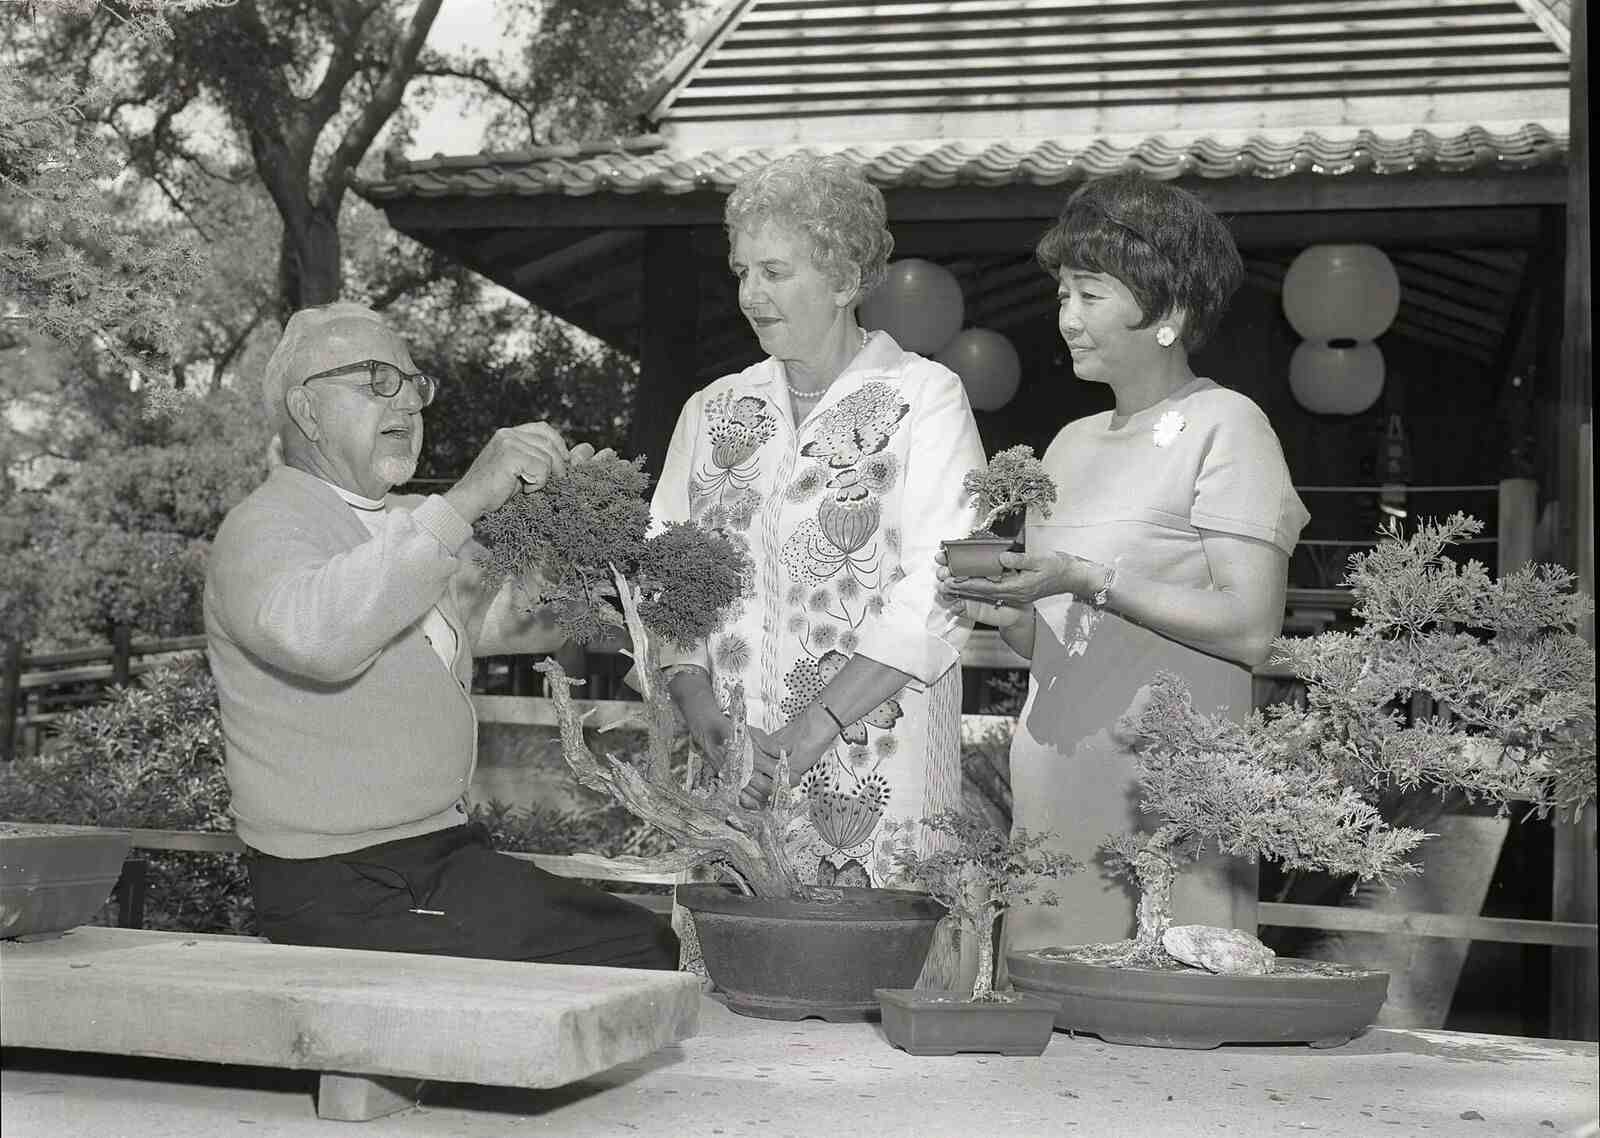 Third annual Bonsai Festival at Descanso Gardens, Sept. 17, 1968. Courtesy of Japanese American National Museum. (Photo by Toyo Miyatake, gift of the Alan Miyatake family)